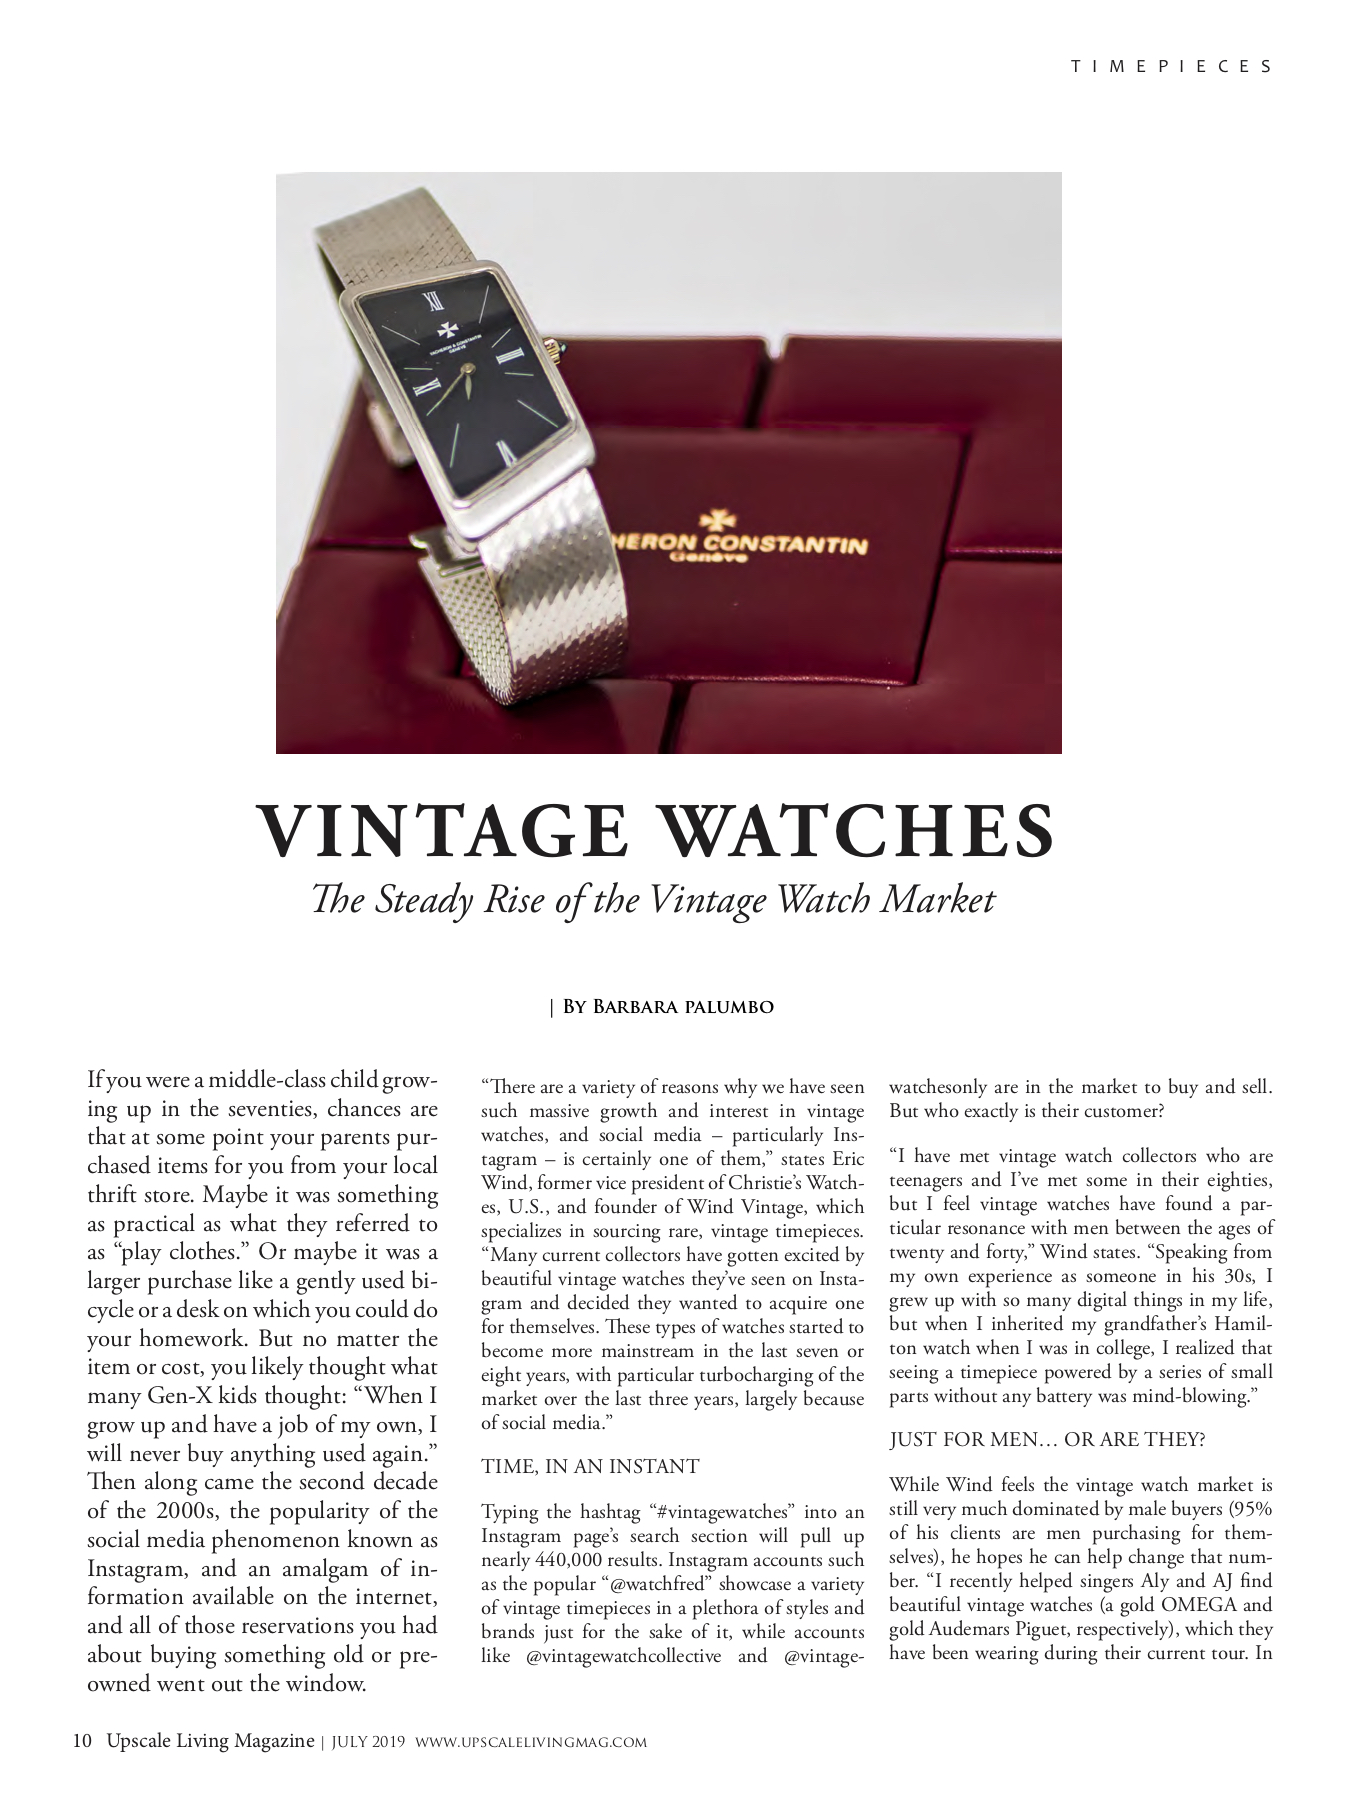 Vintage Watches - JULY 2019 digital - Upscale Living JPEG.jpg